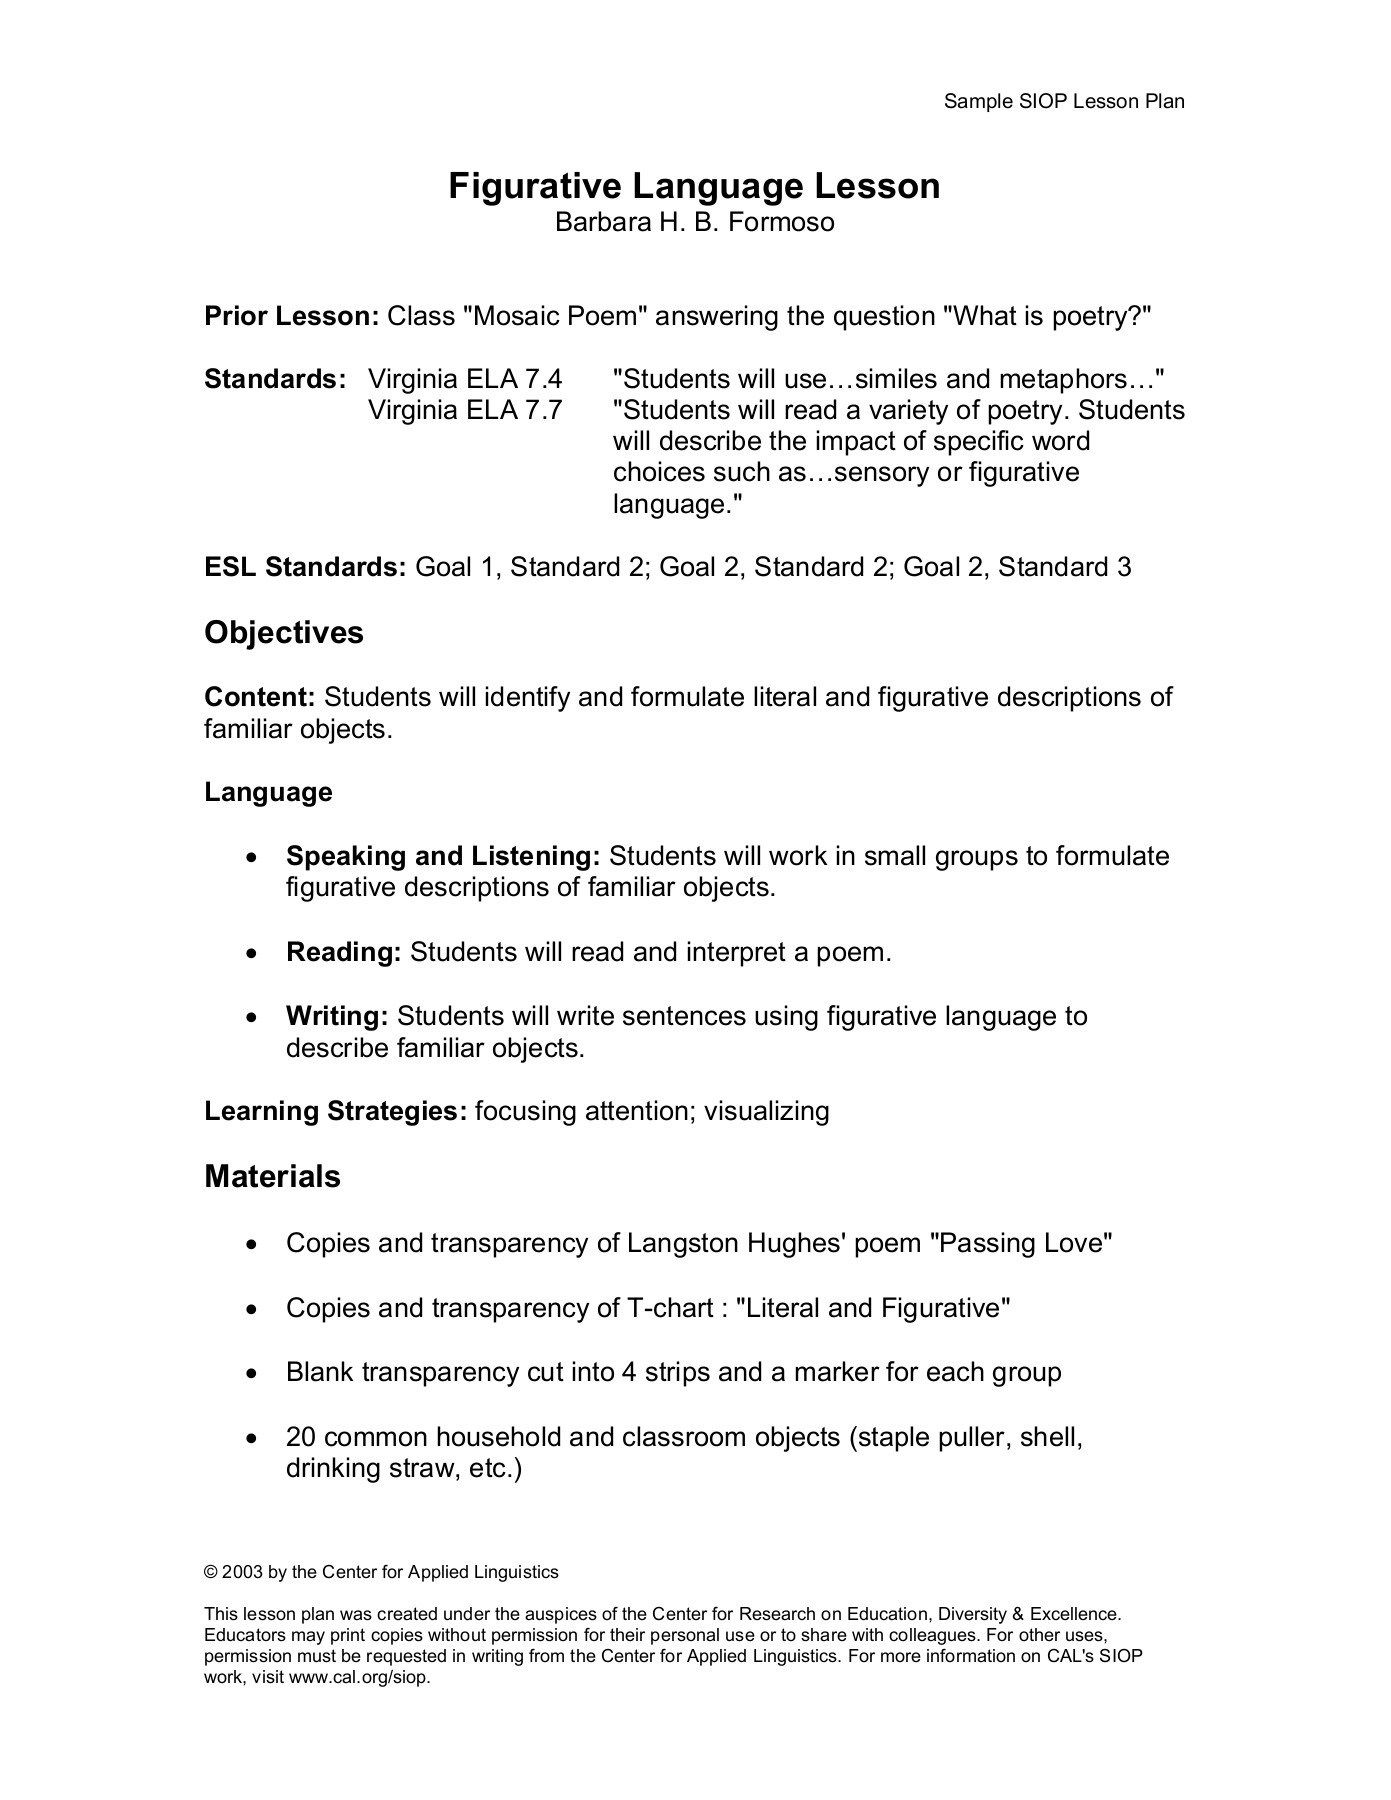 001 Unusual Siop Lesson Plan Template 1 Example High Definition Full